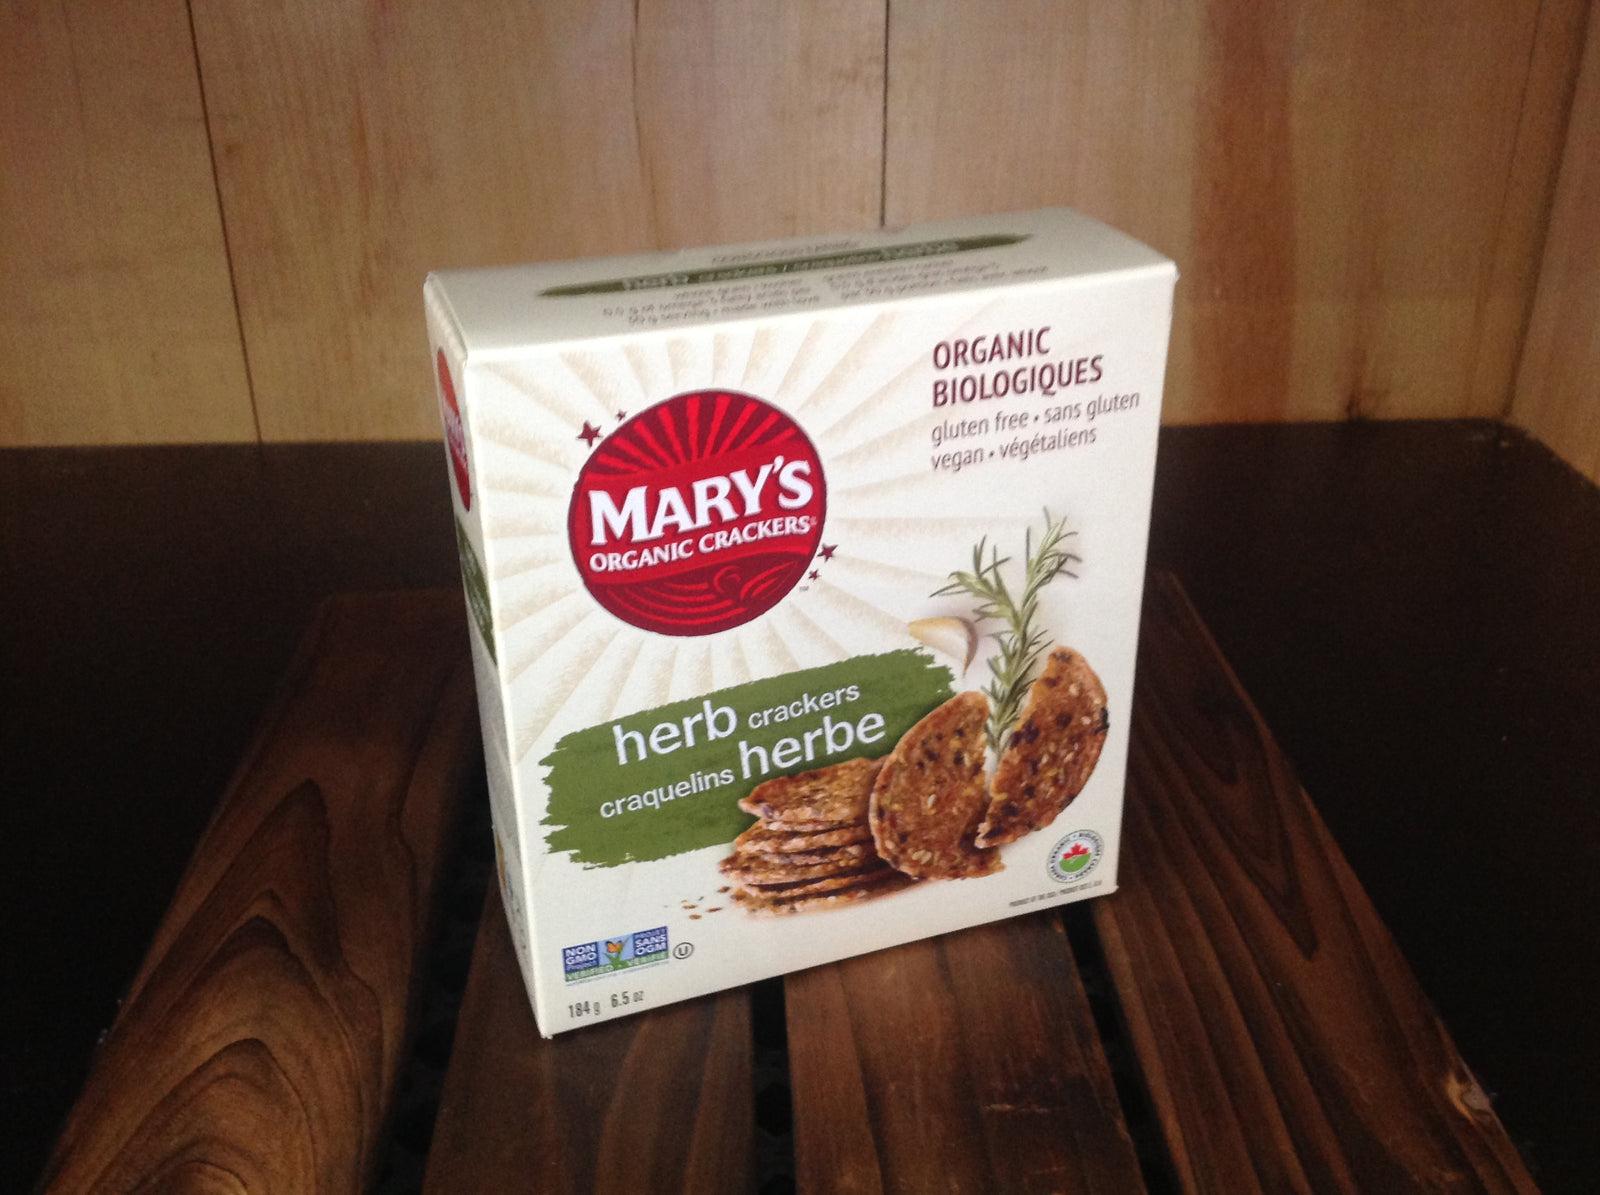 Mary's Herb Crackers